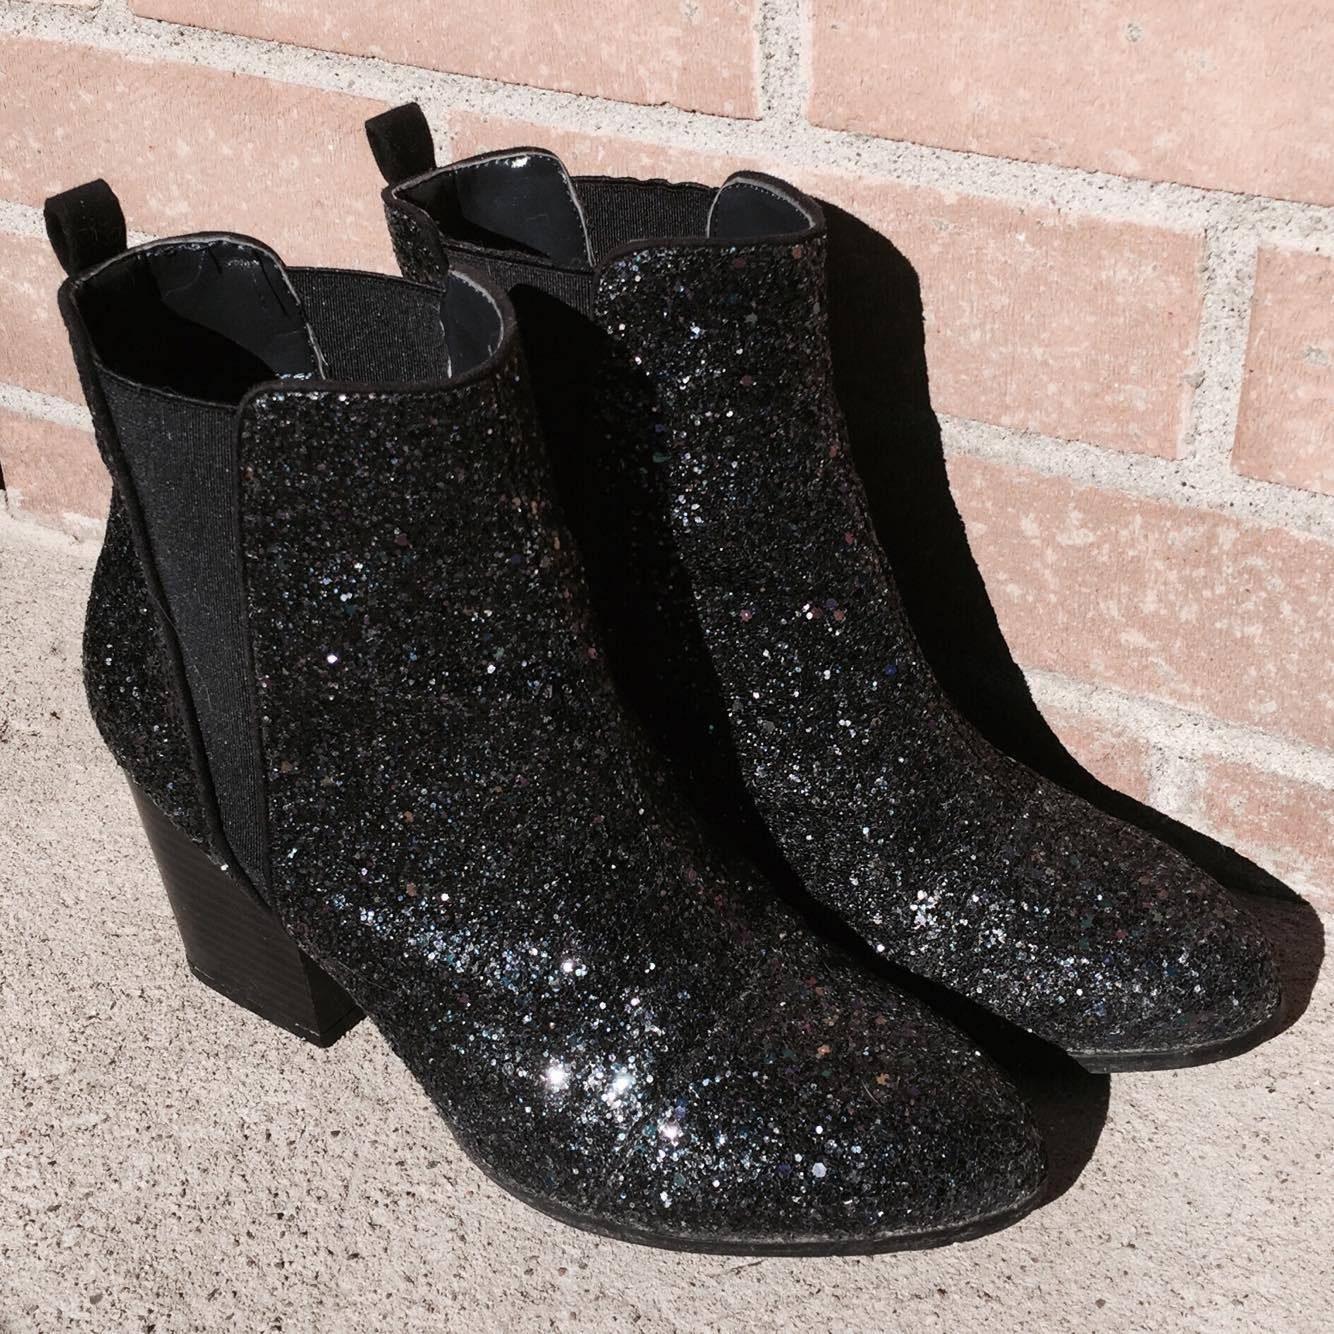 bottes noires boots fashion mode chelsea bling glitters